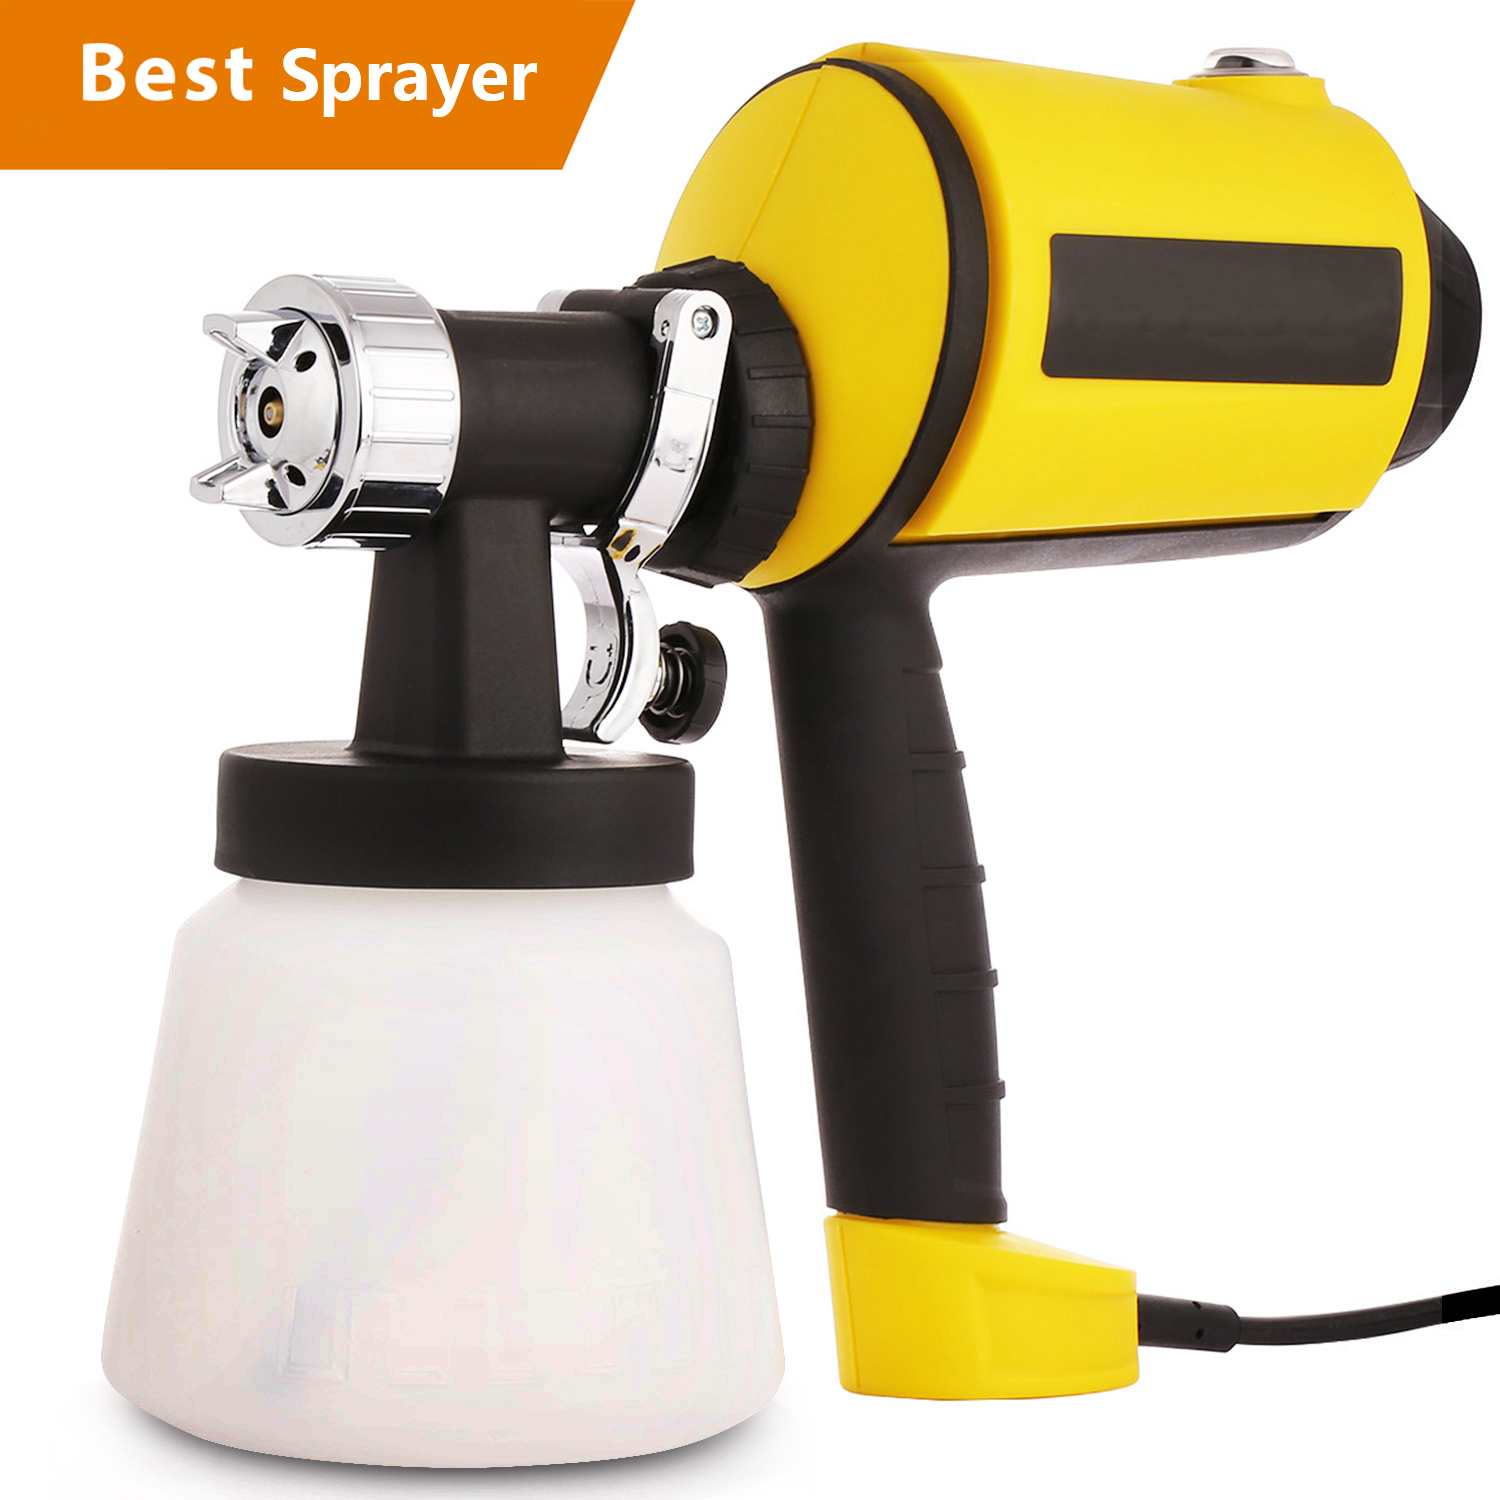 Clearance&Sale! Electric Paint Sprayer Gun Power Painter 400 Watt HVLP Spray Gun Kit for Home, 3 Nozzle Sizes, Lightweight, Easy Spraying and Cleaning, Perfect for Beginner (US Stock) Yellow HFON